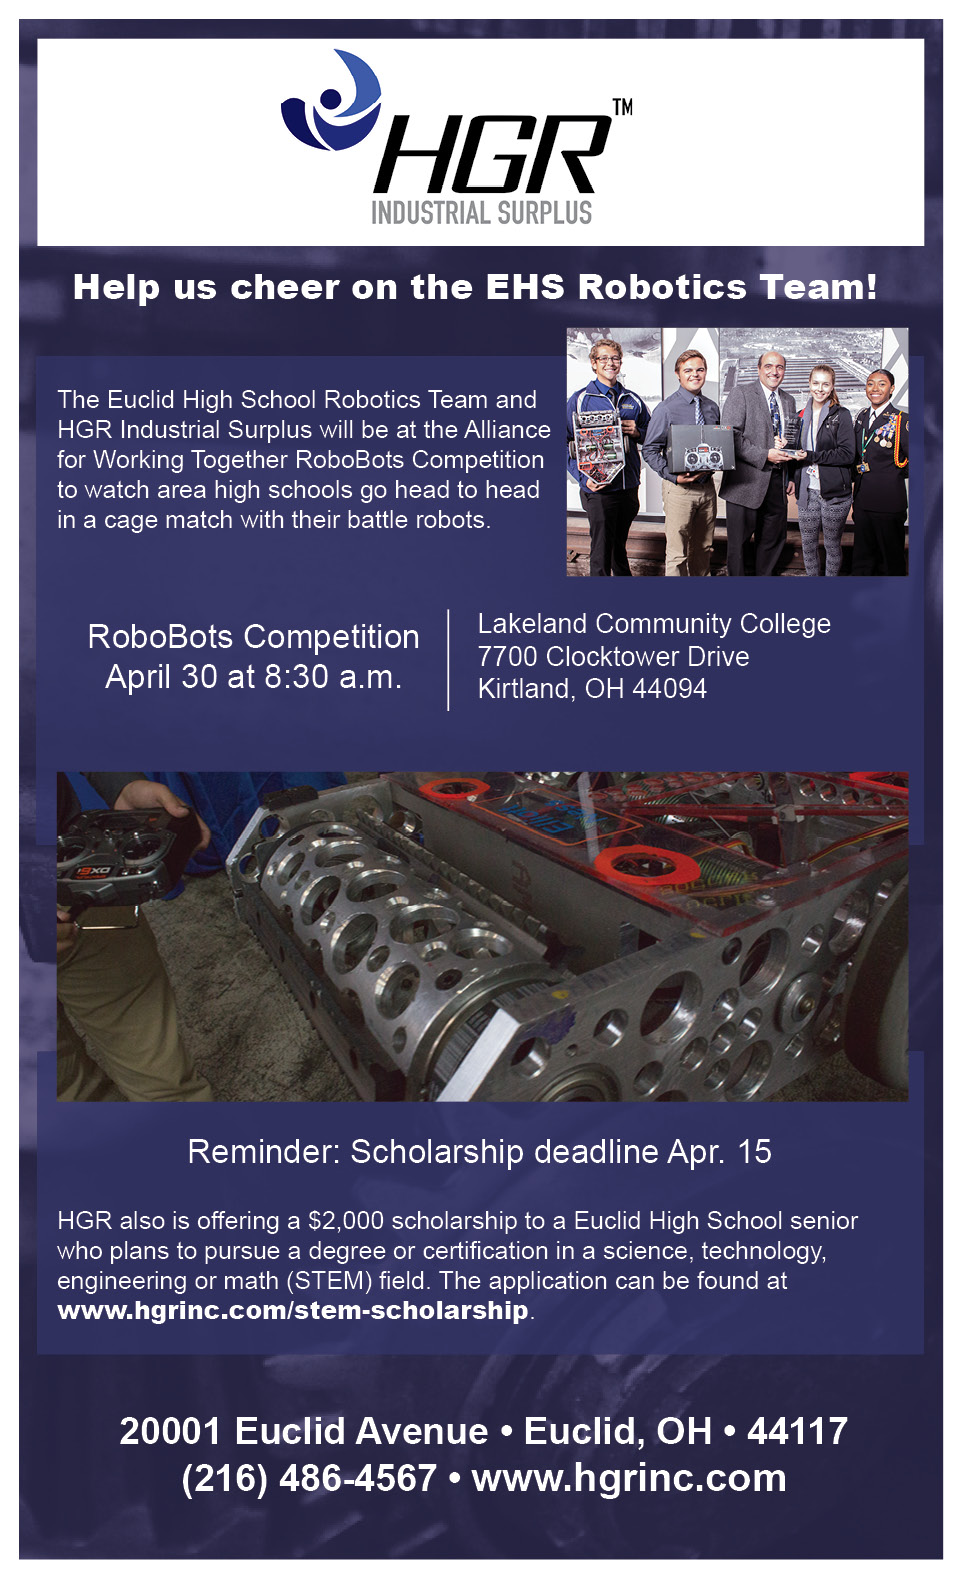 Invite to AWT RoboBots Competition and HGR Industrial Surplus Scholarship Application